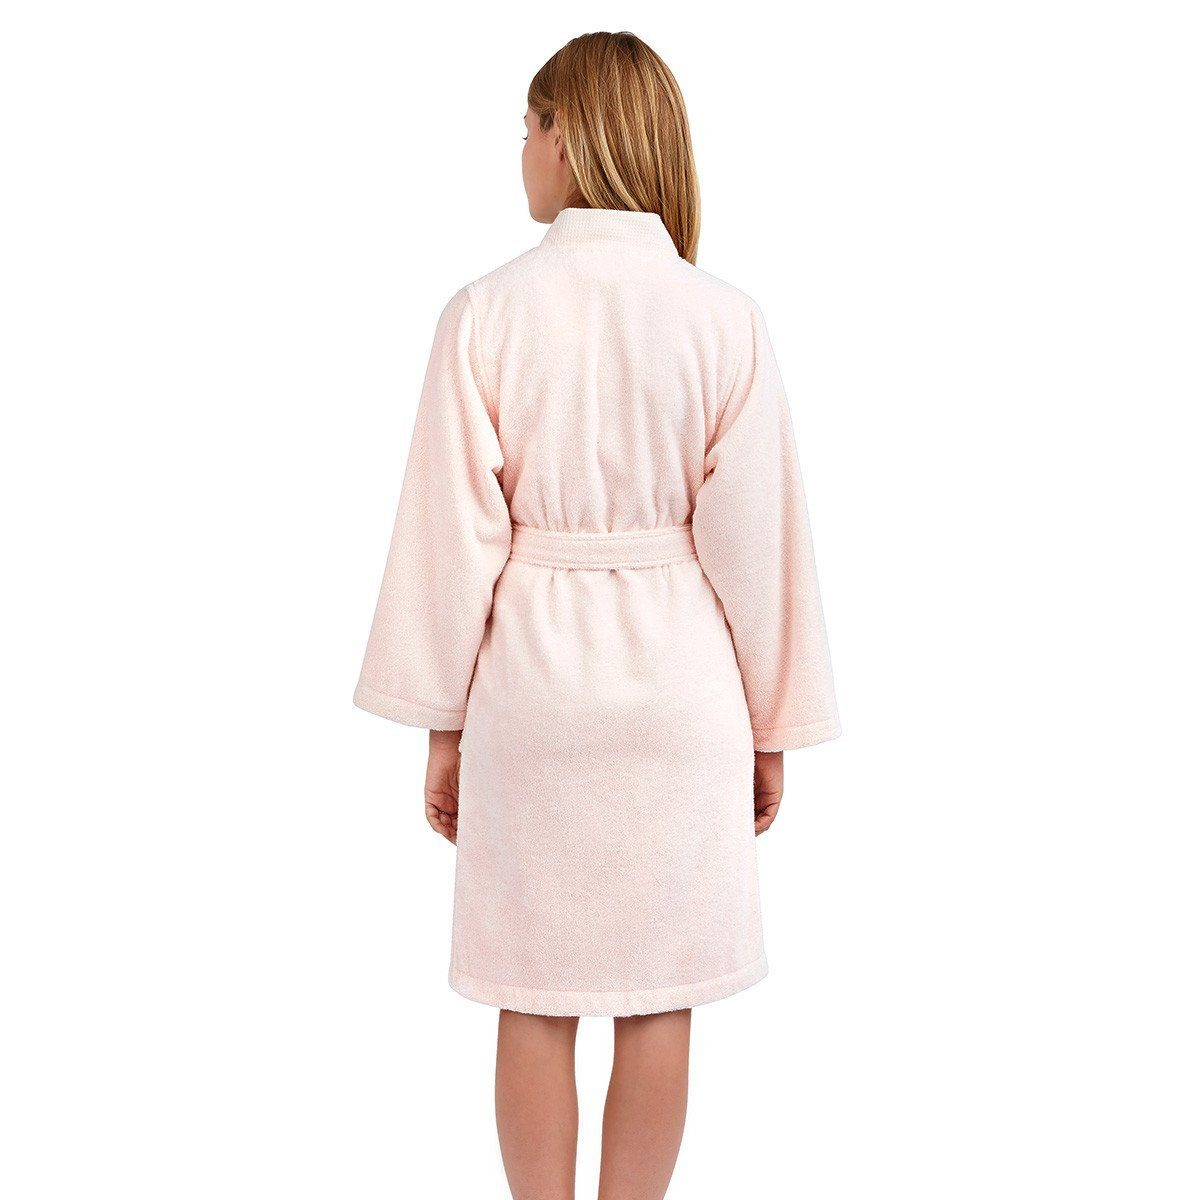 Astrée Kimono Blush Pink Bathrobe by Yves Delorme | Fig Linens - Back